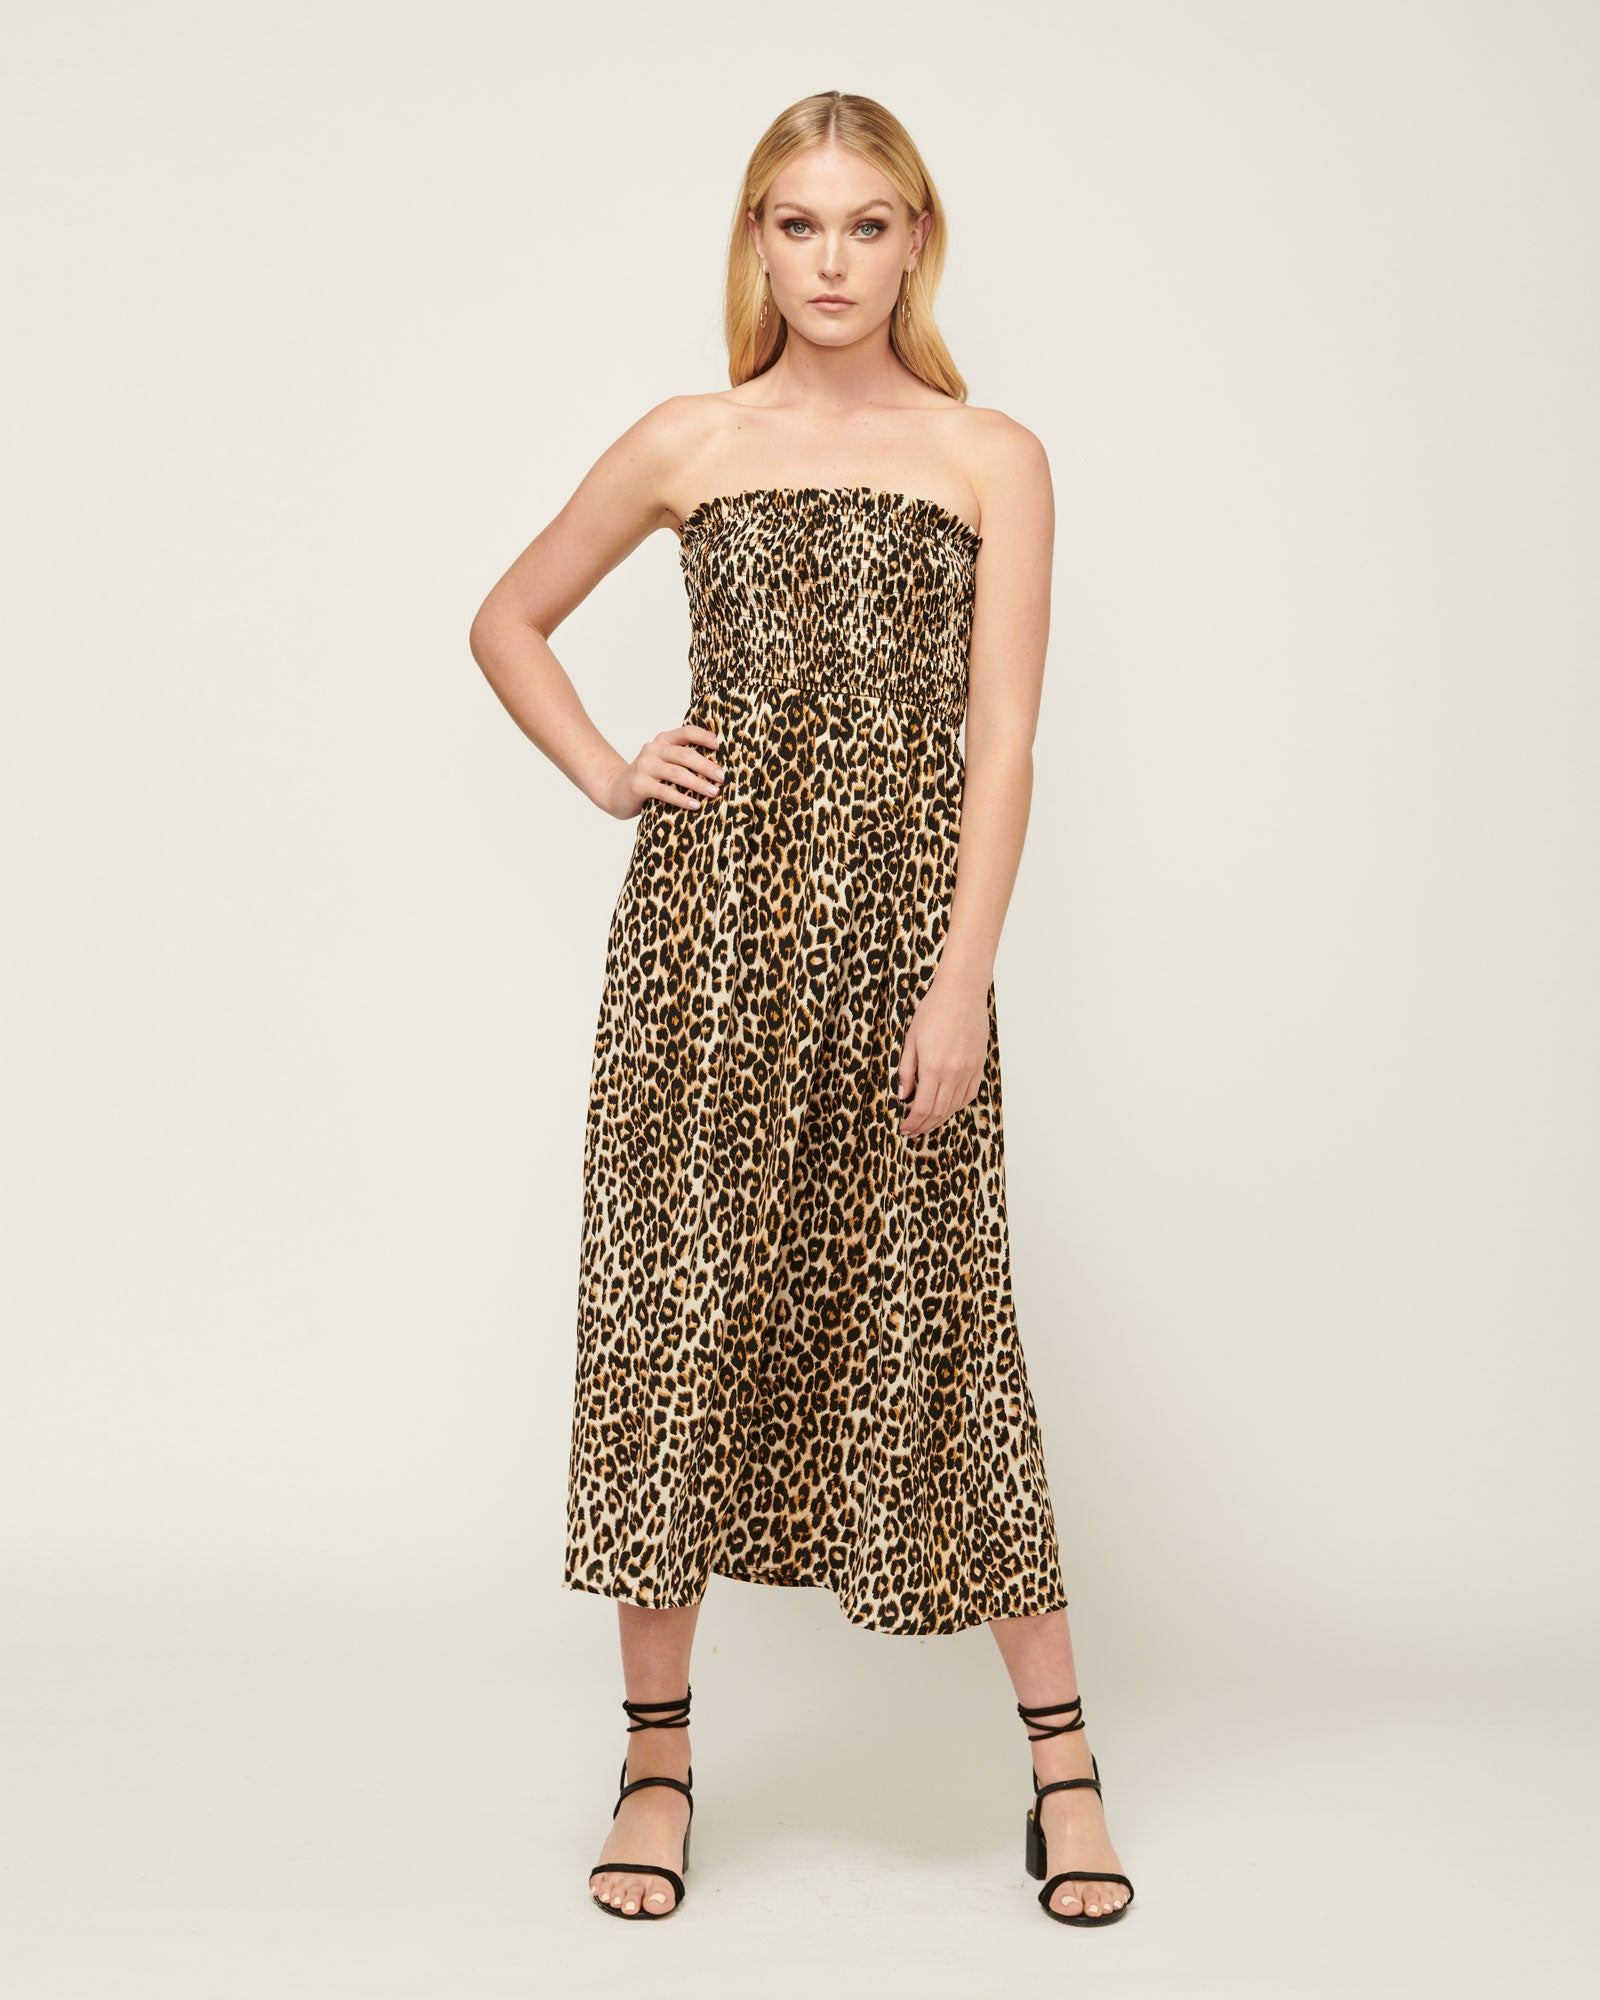 ALEJANDRO MIDI DRESS